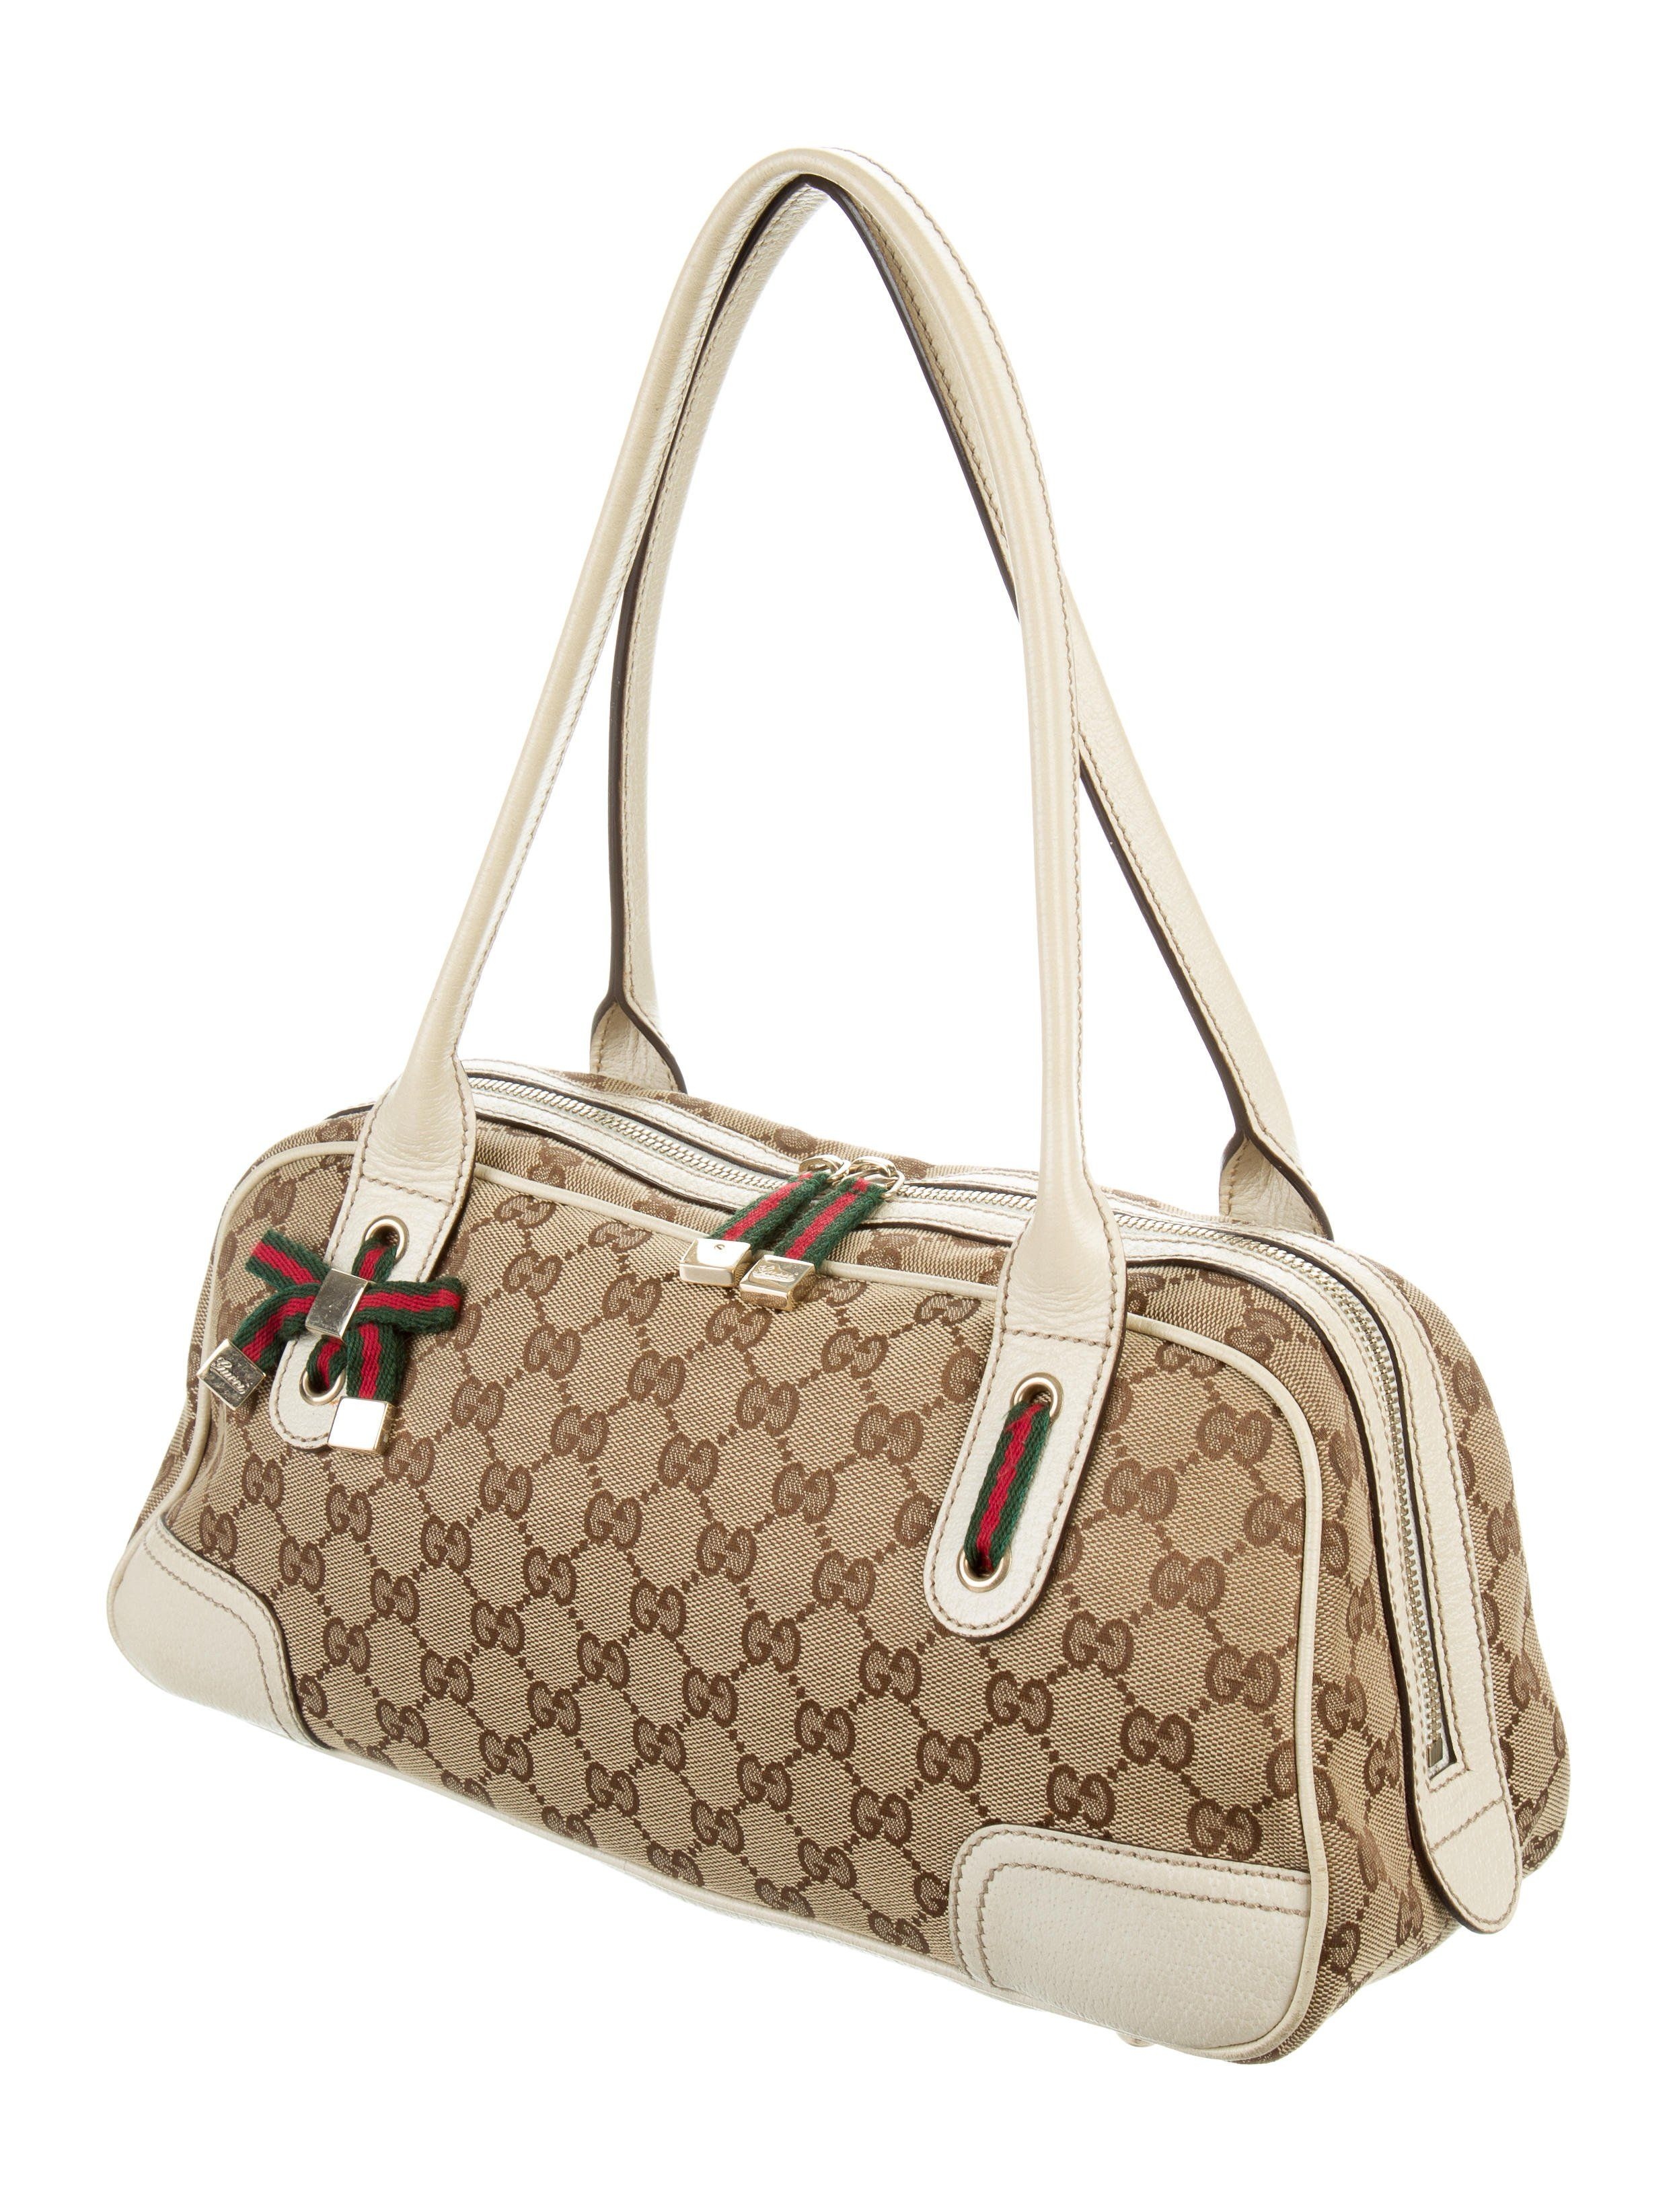 70c05a03b457 Brown and tan GG canvas Gucci Princy Boston bag with gold-tone hardware